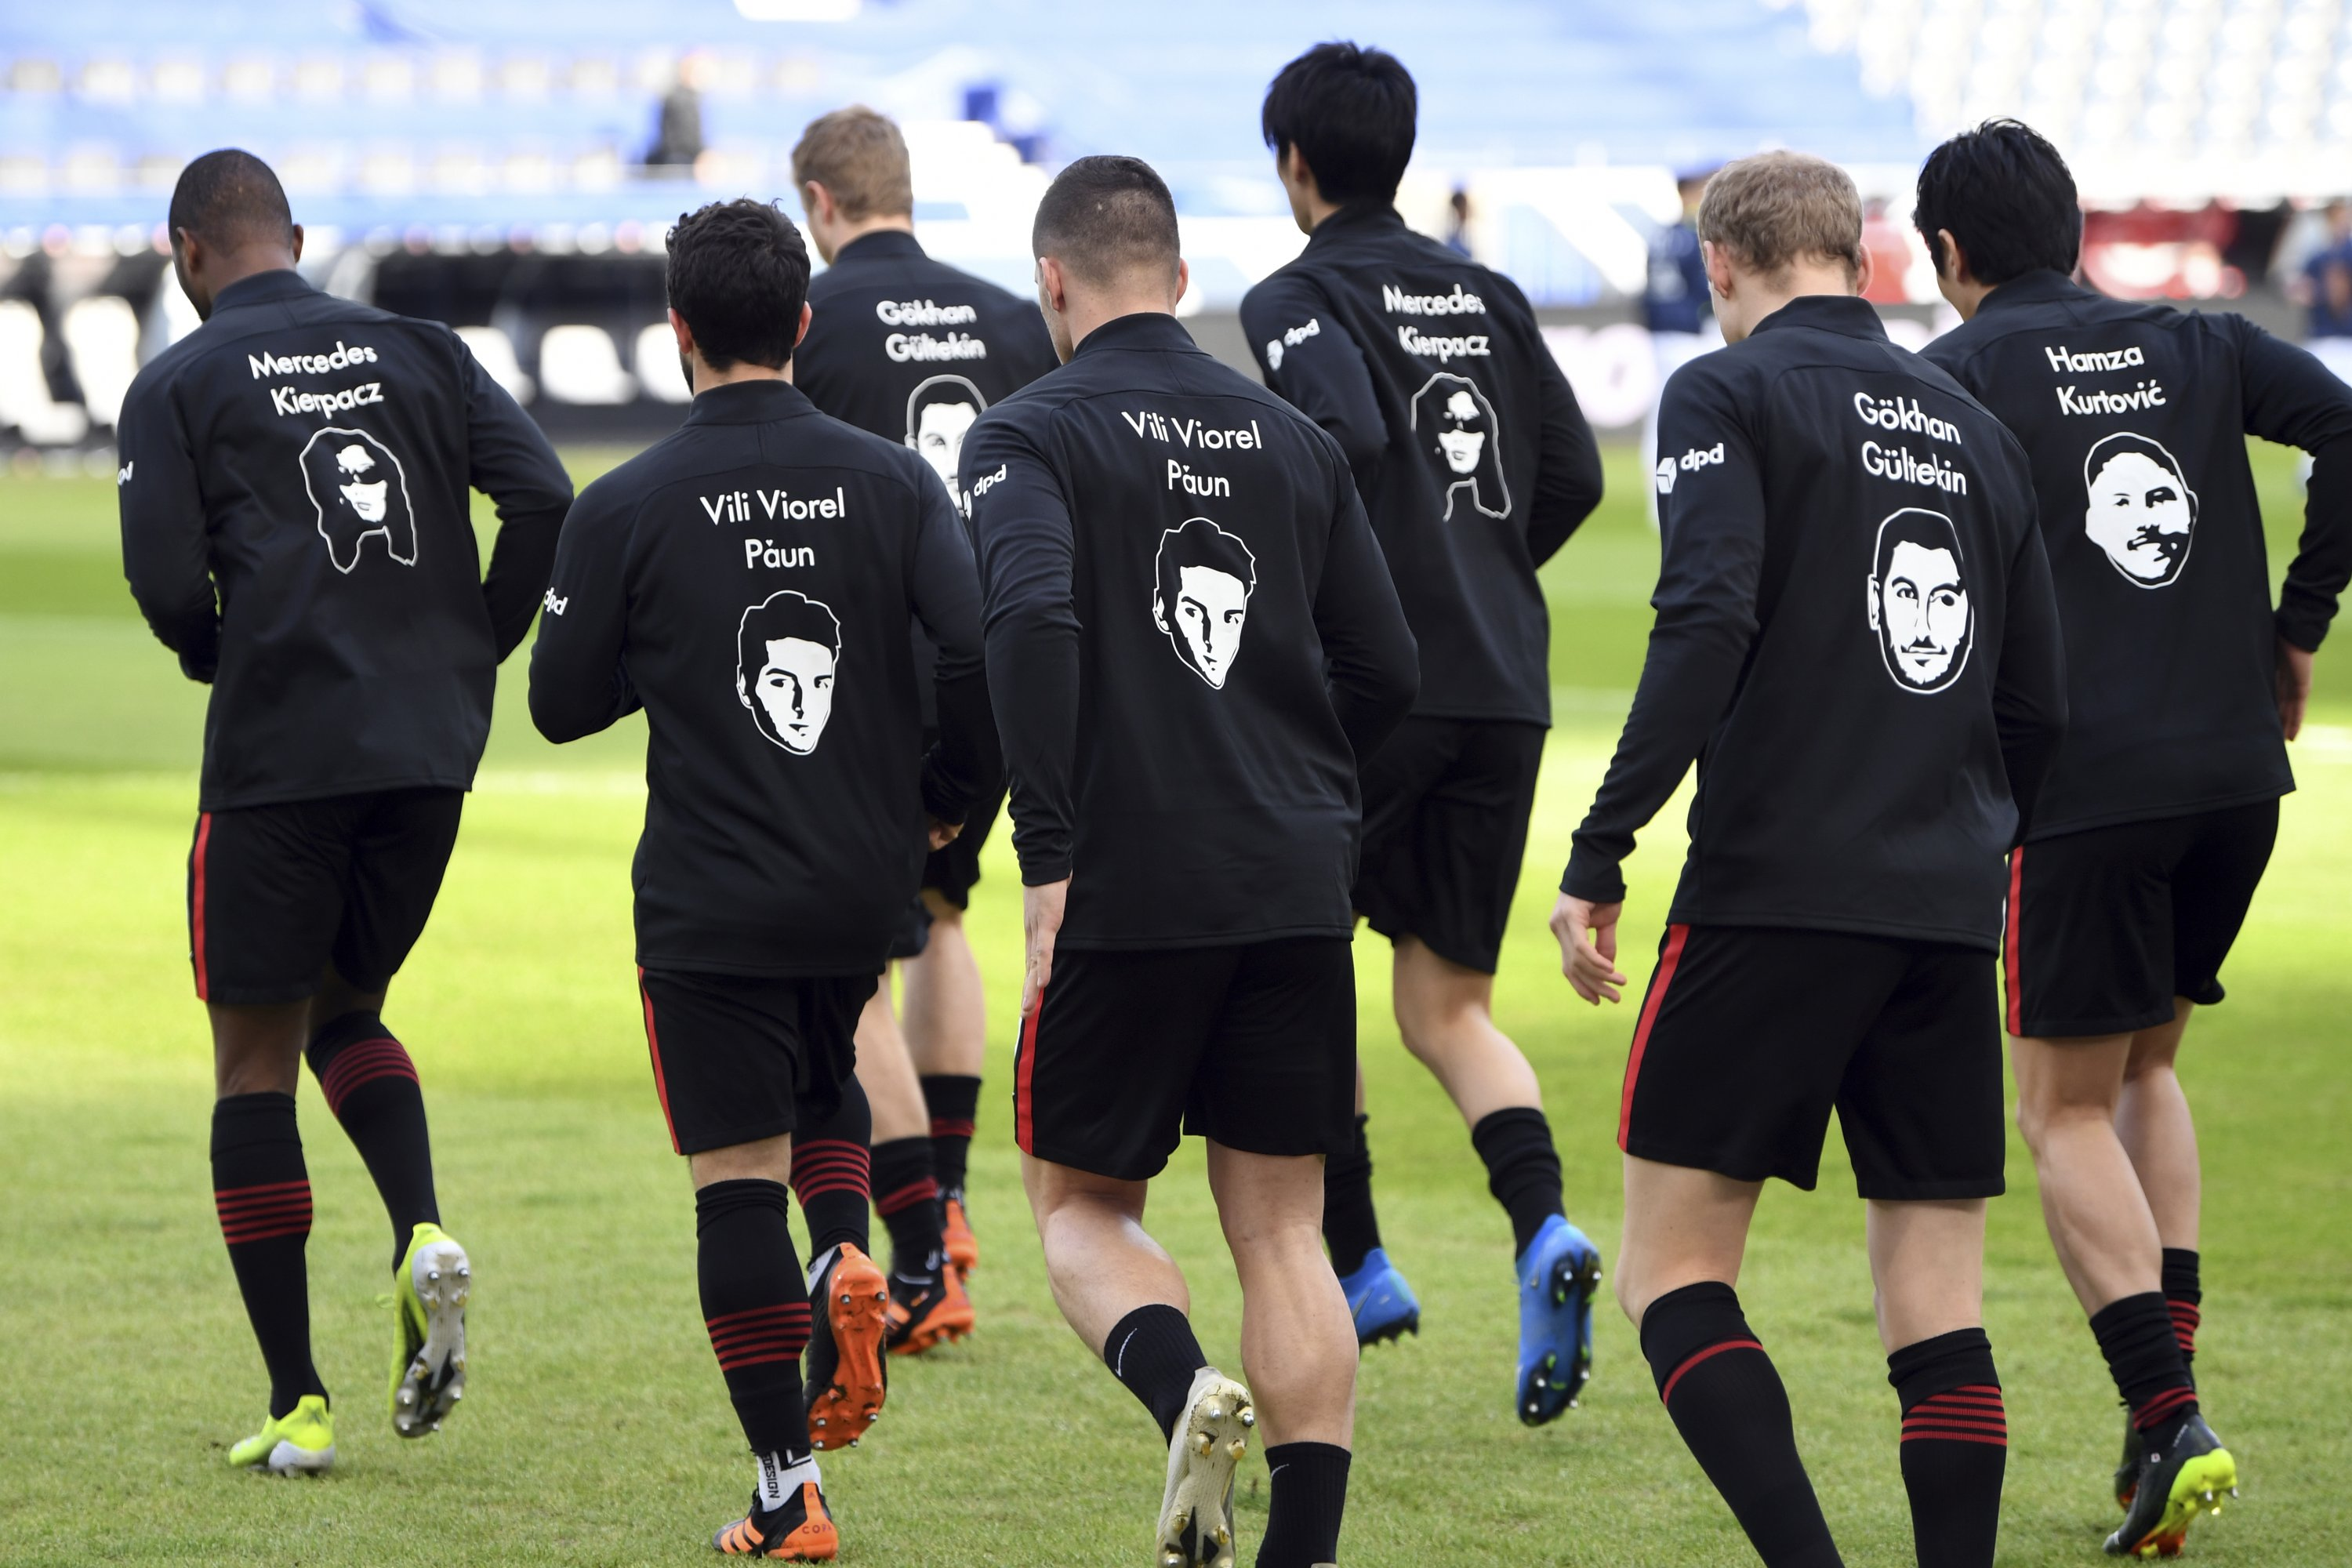 Frankfurt players wear the pictures and names of the victims of the shooting in Hanau a year ago on their training jackets, prior to the German Bundesliga match against Bayern Munich, Frankfurt, Germany, Feb. 20, 2021. (AP Photo)